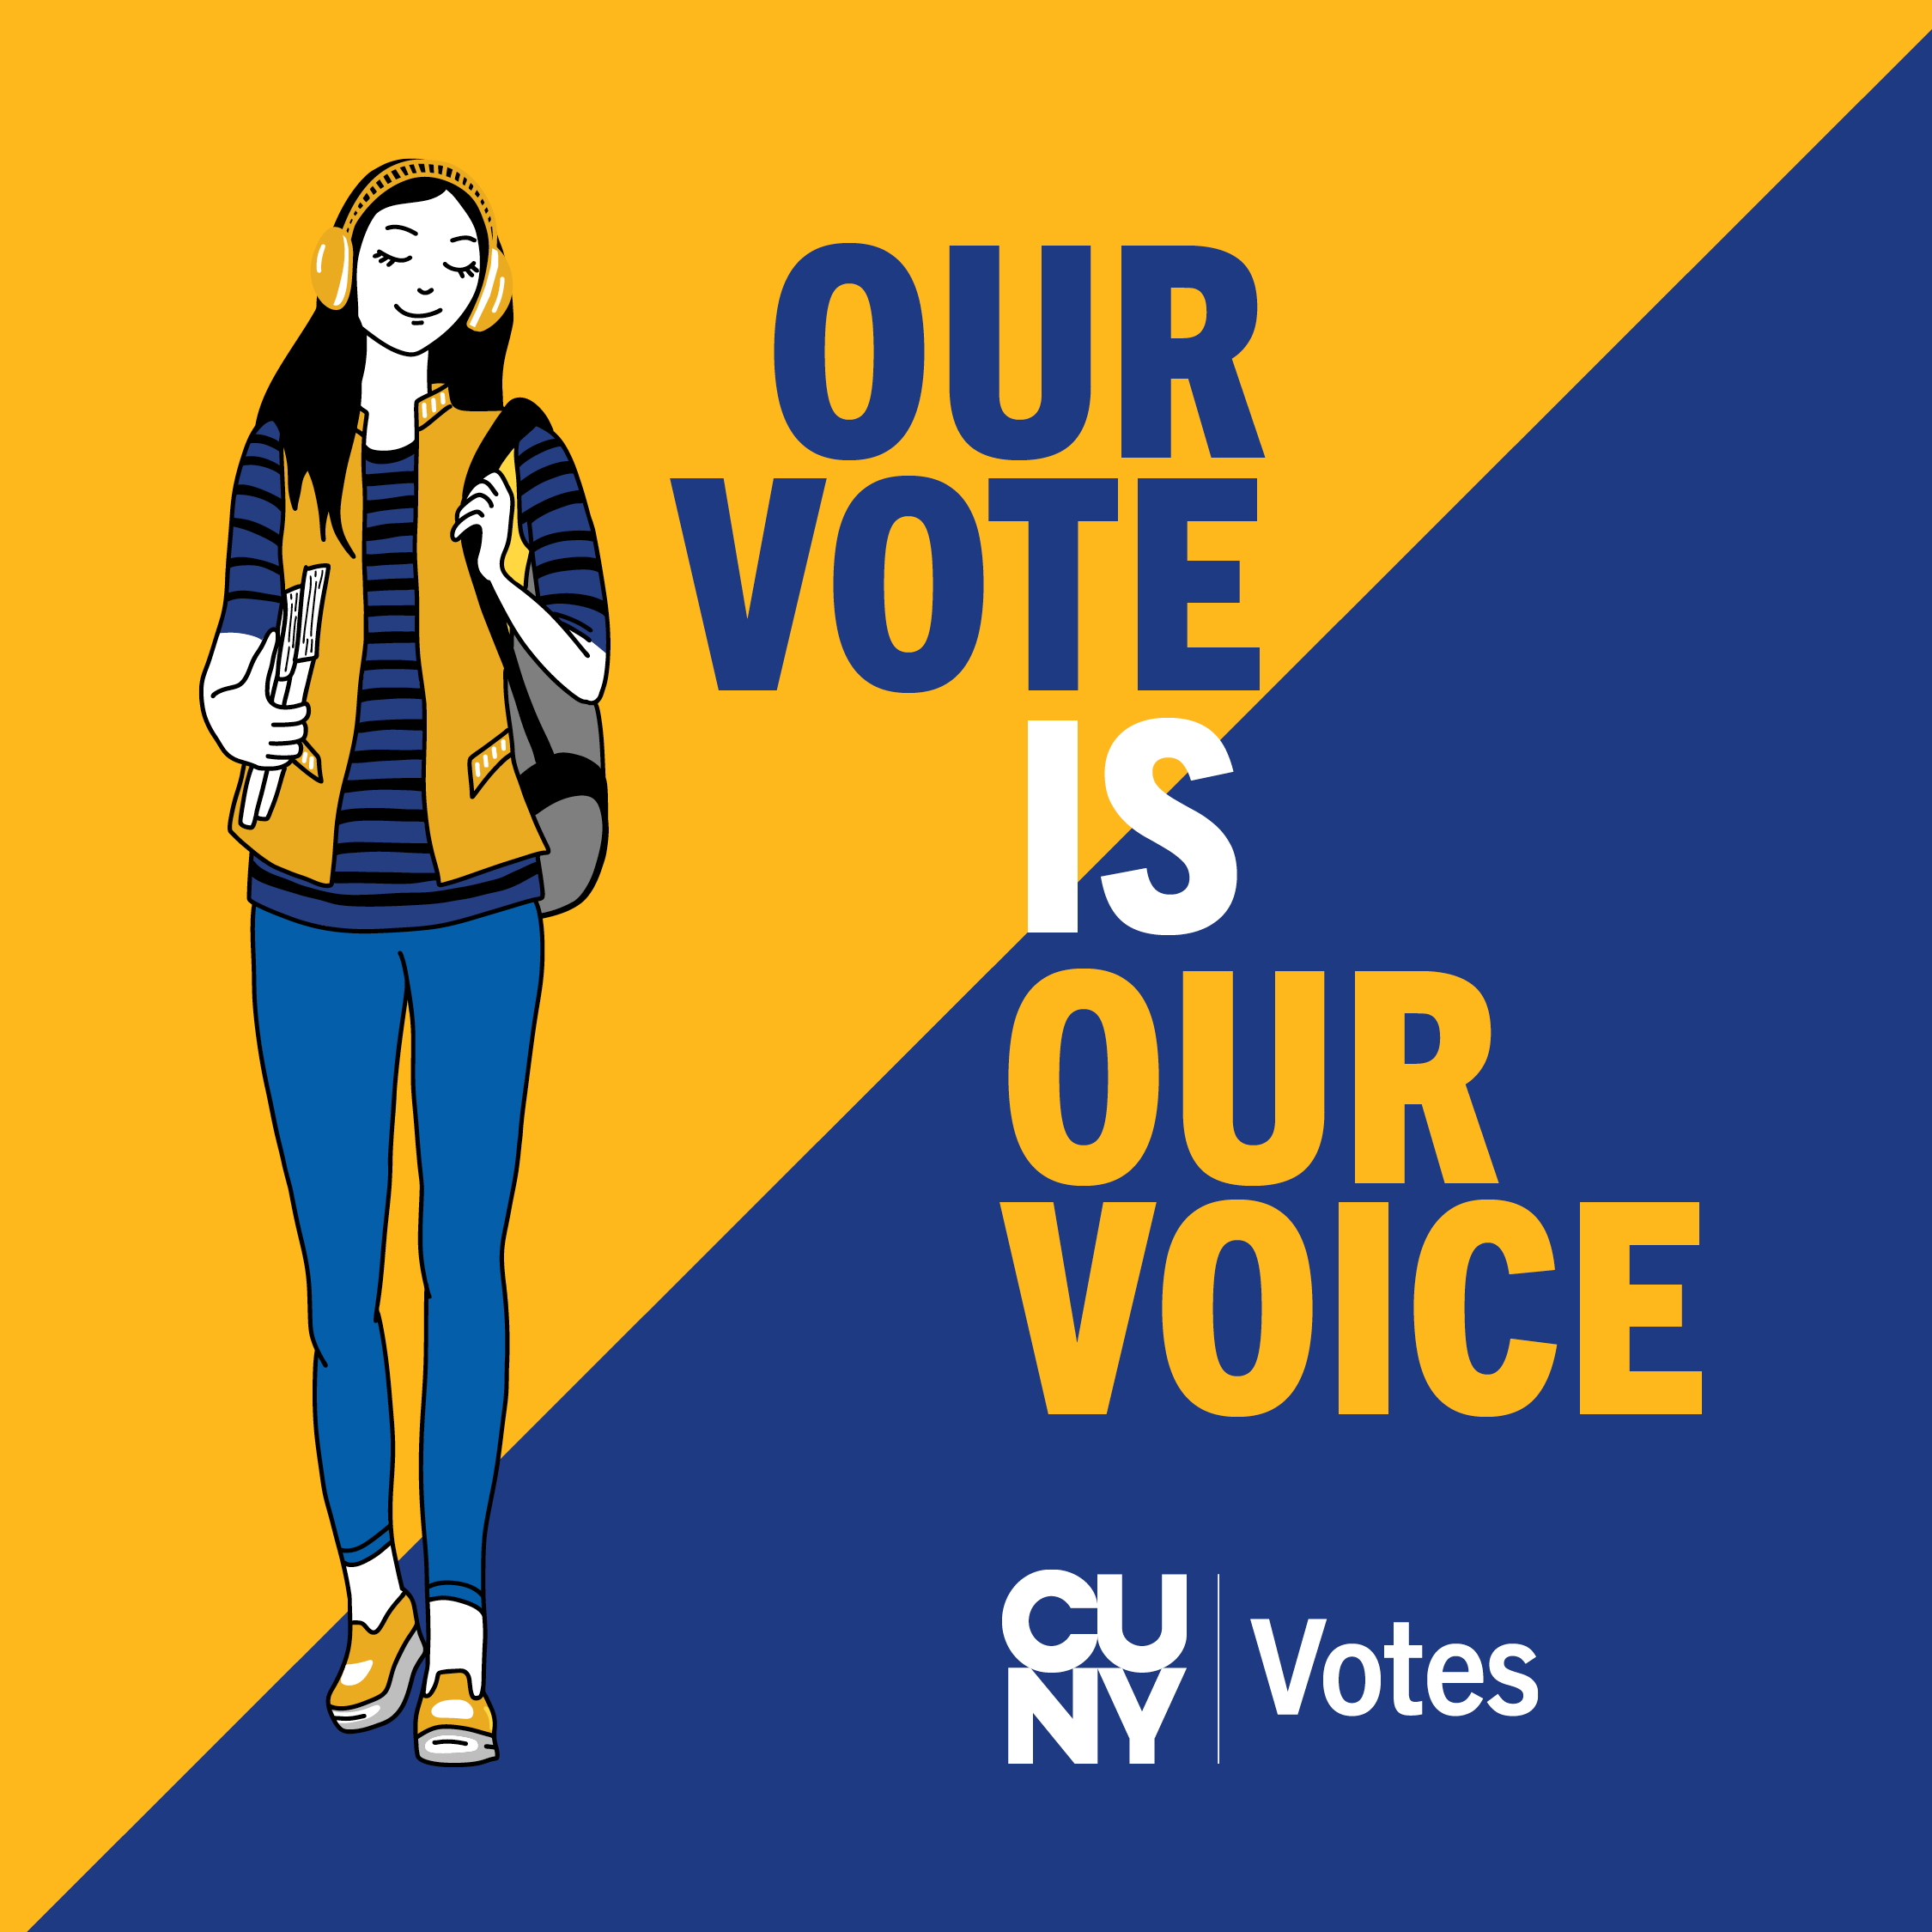 Our Vote is Our Voice - CUNY Votes graphic